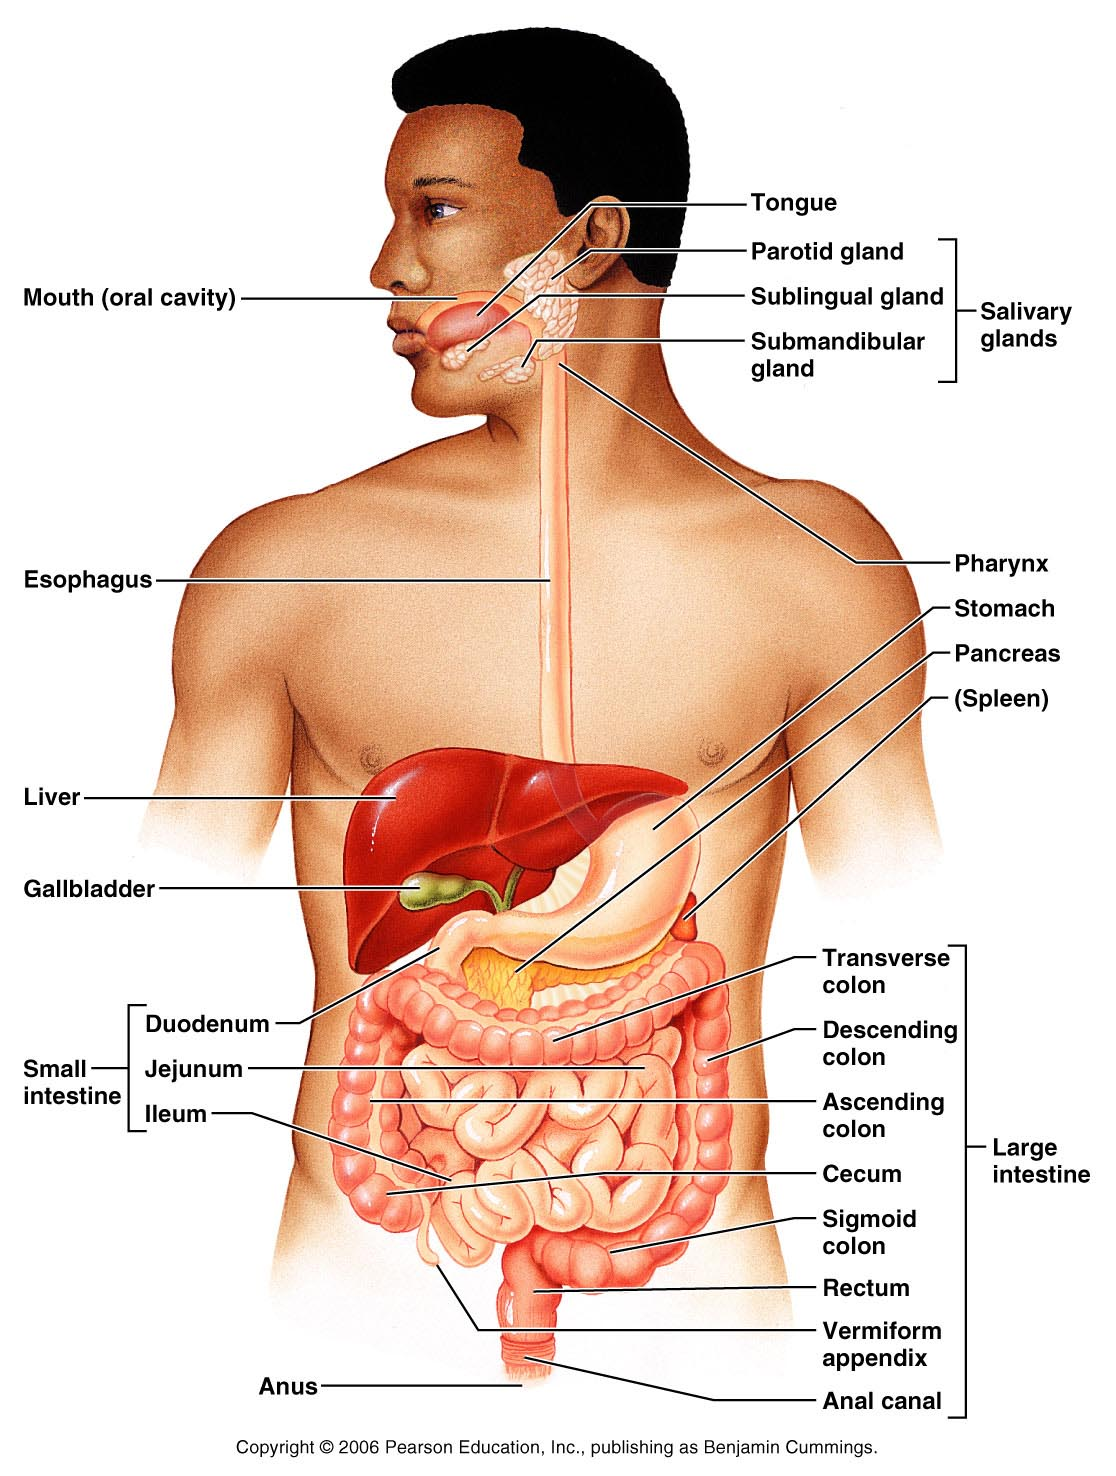 The Purpose Of The Digestive System Is To Turn The Food Y